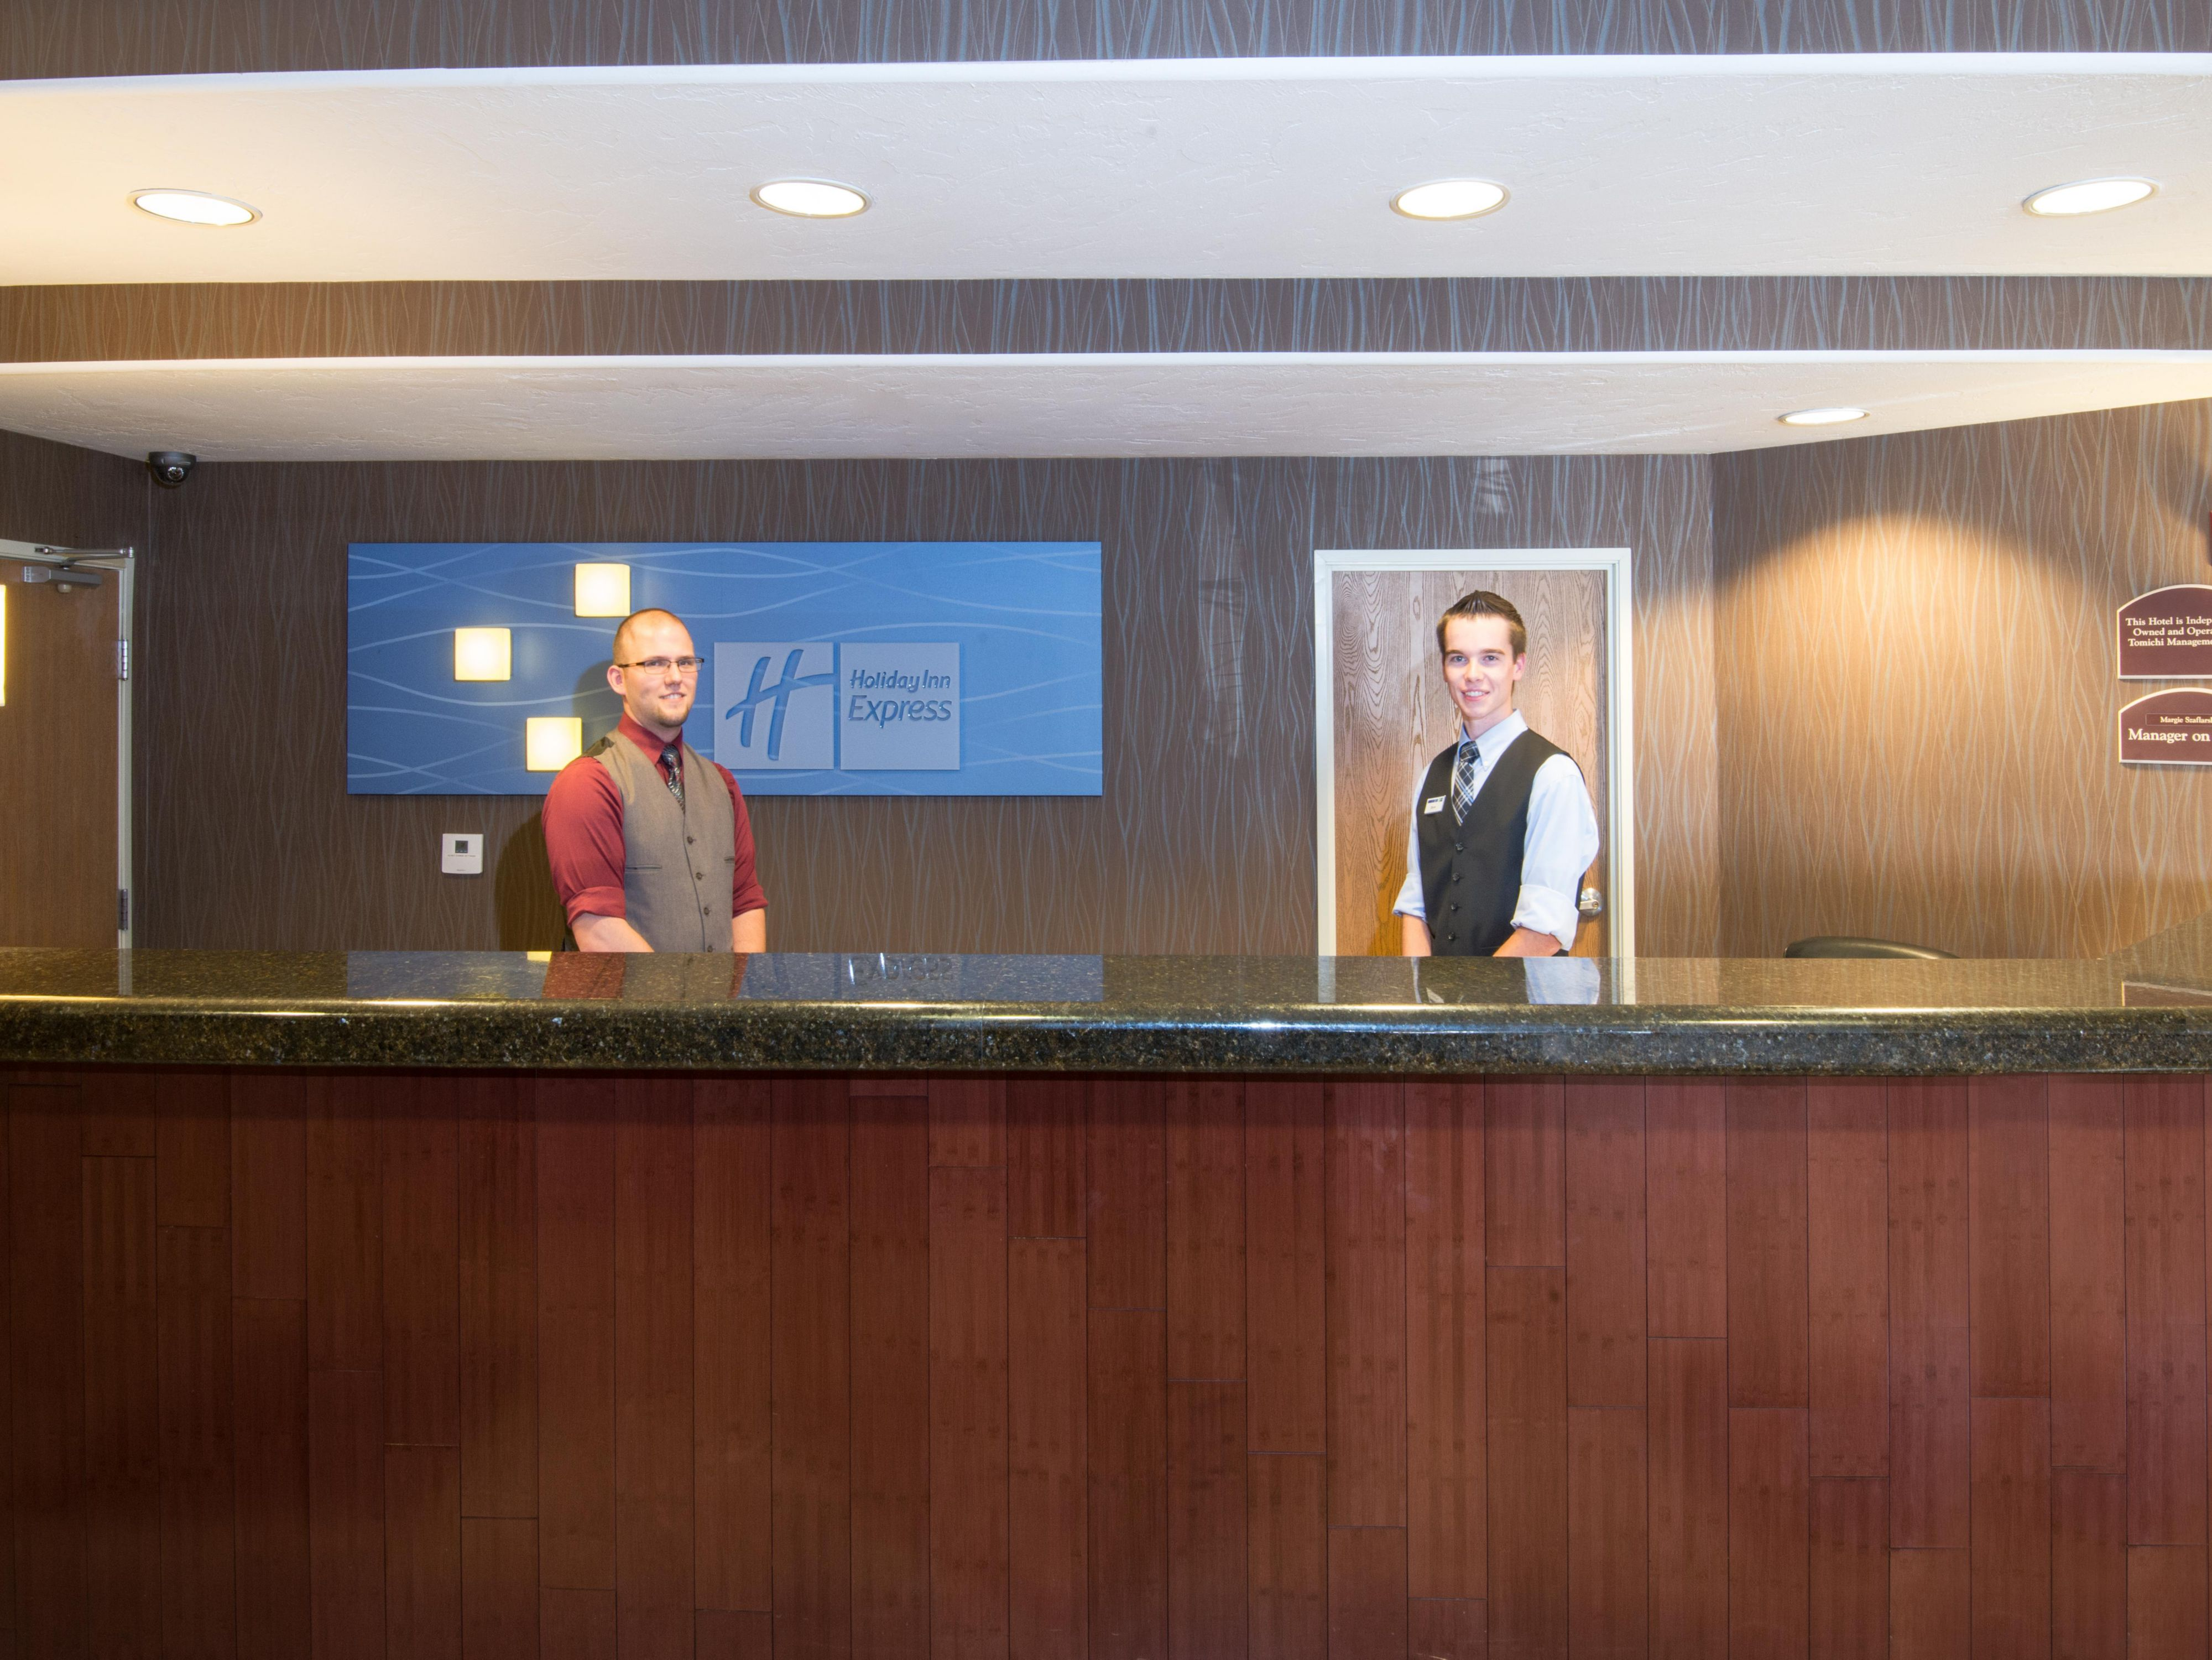 Our Front Desk staff is here to assist you during your stay